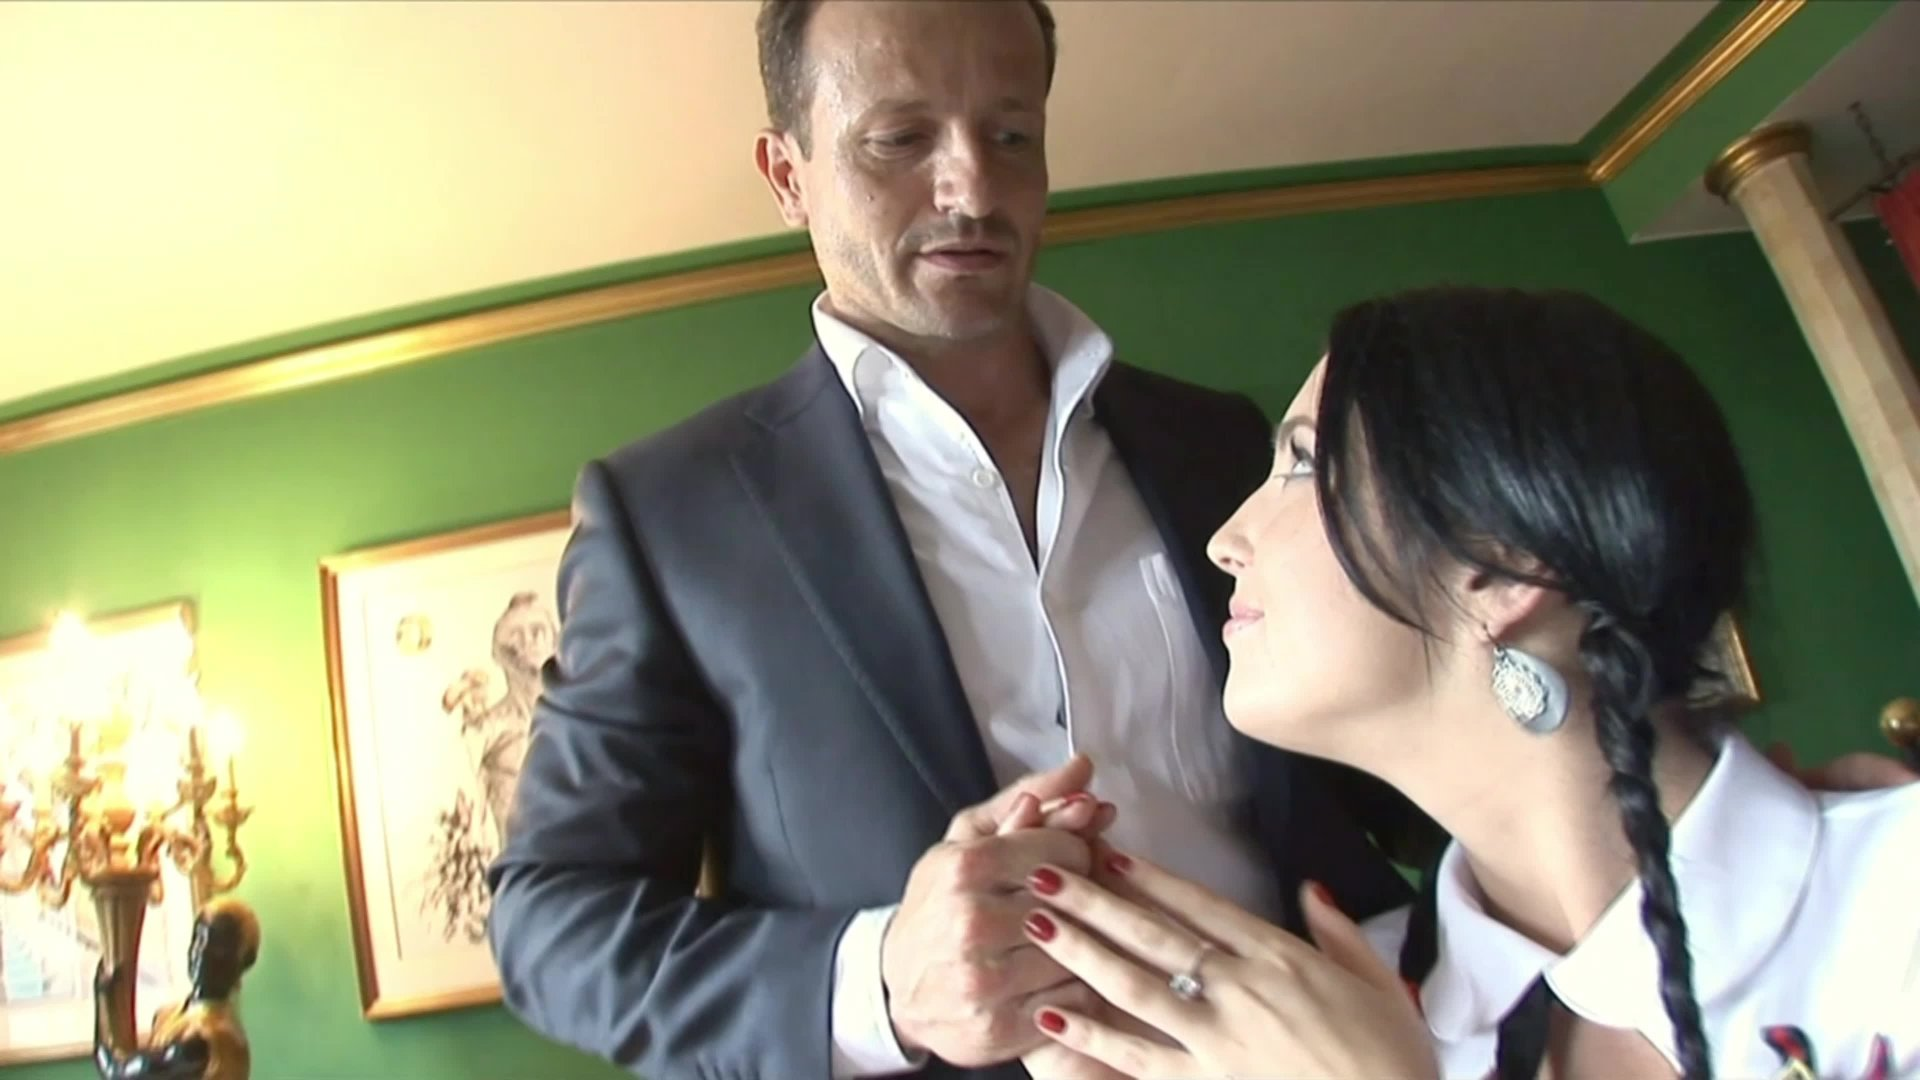 Lusa Ballbusting Xxx Showing Porn Images For Lusa Corp Ballbusting Porn Jpg 1280x720